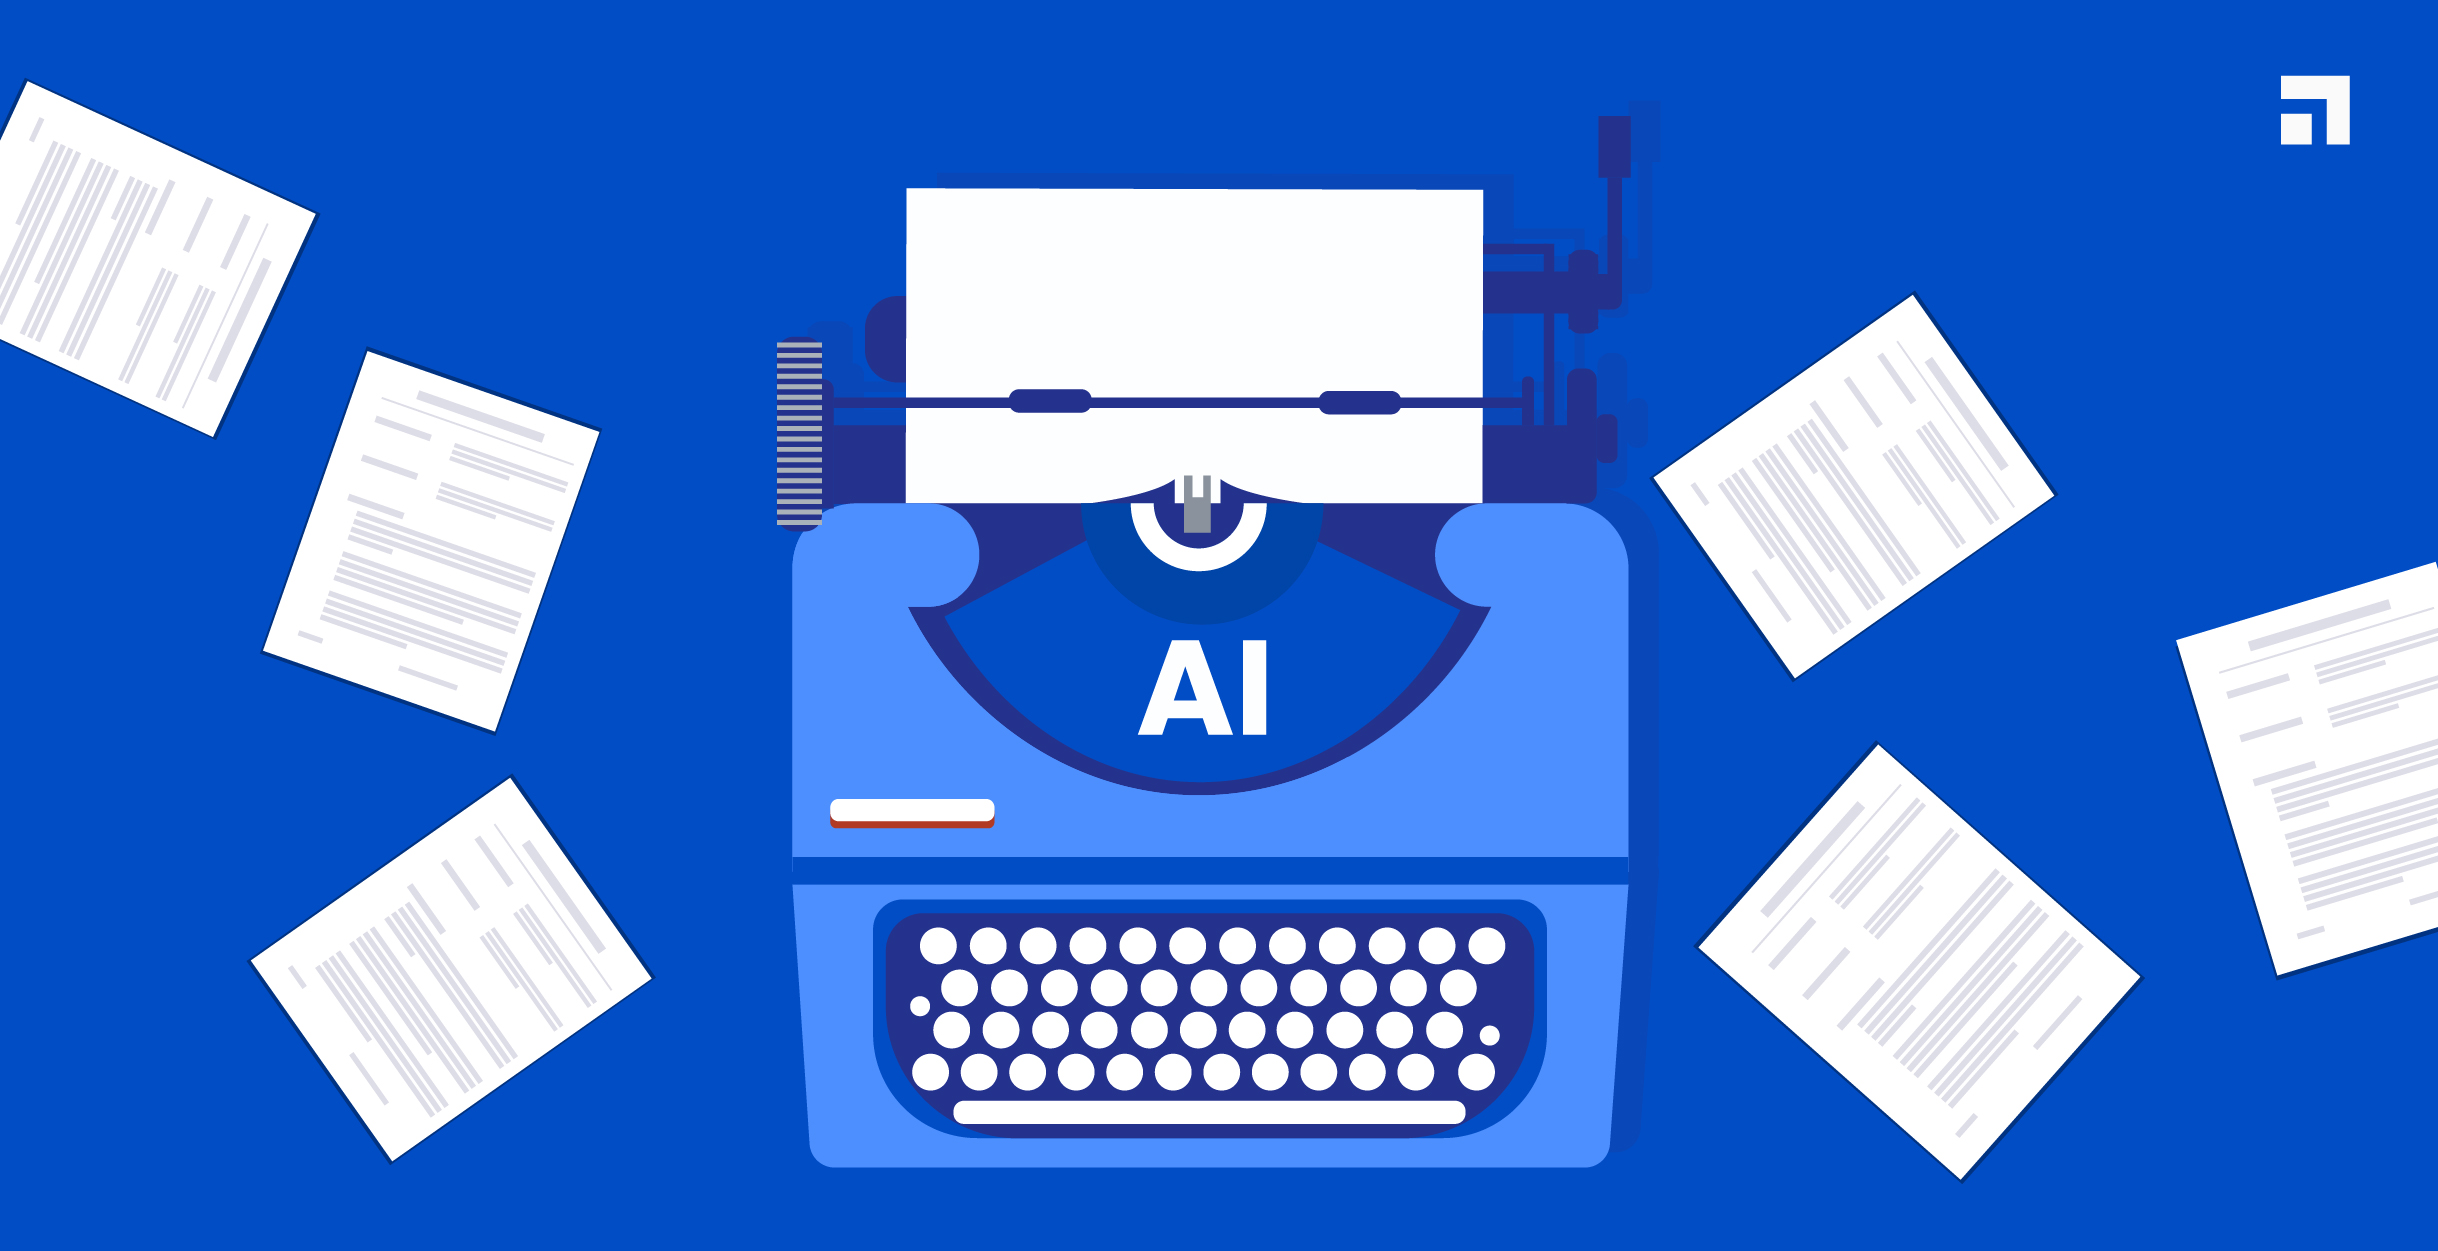 How to use AI story writer to generate amazing stories?